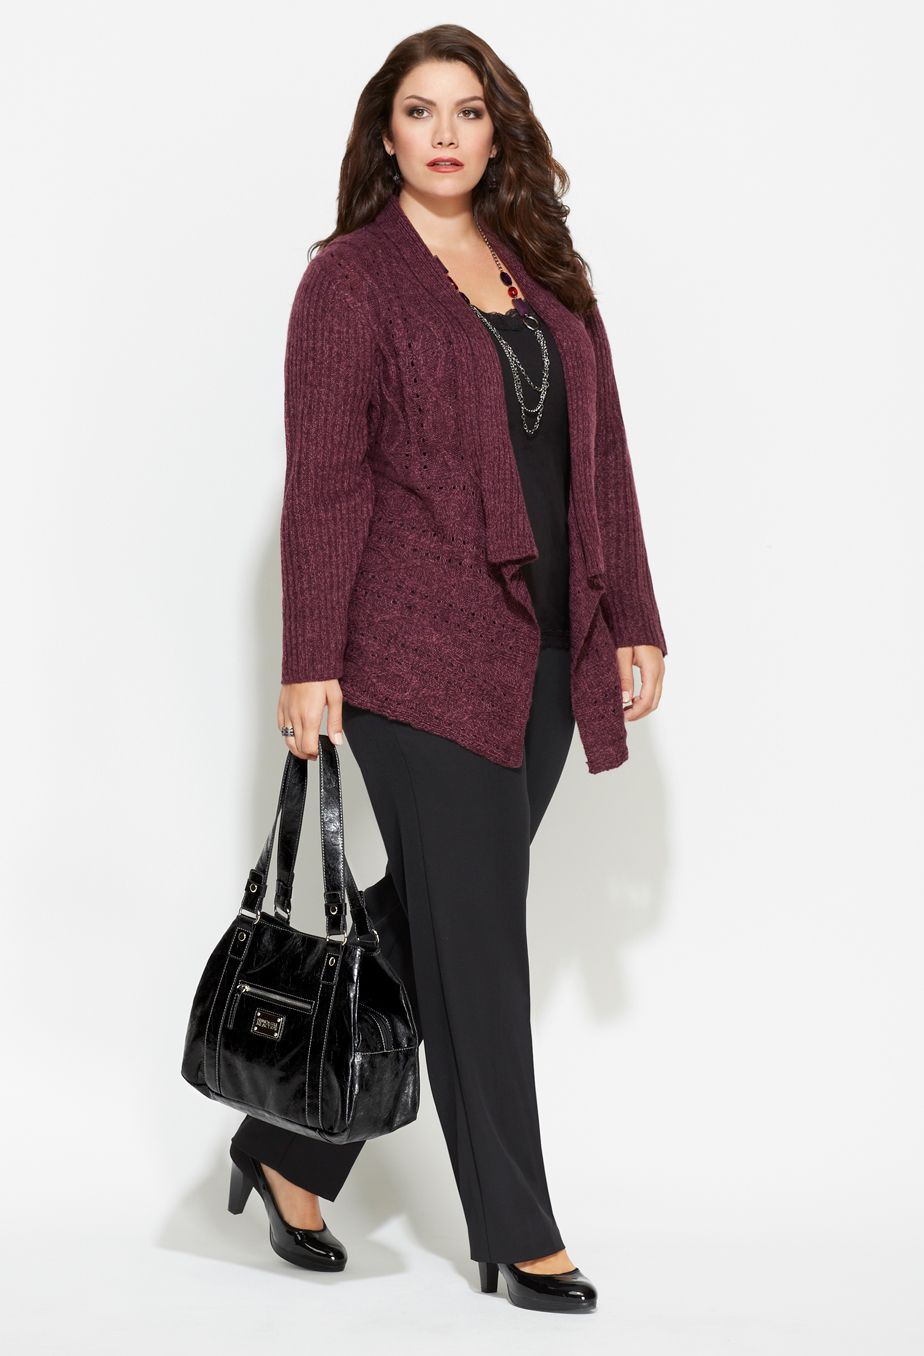 Plus Size 9 to 5 Style | Plus Size Outfits | Avenue ...